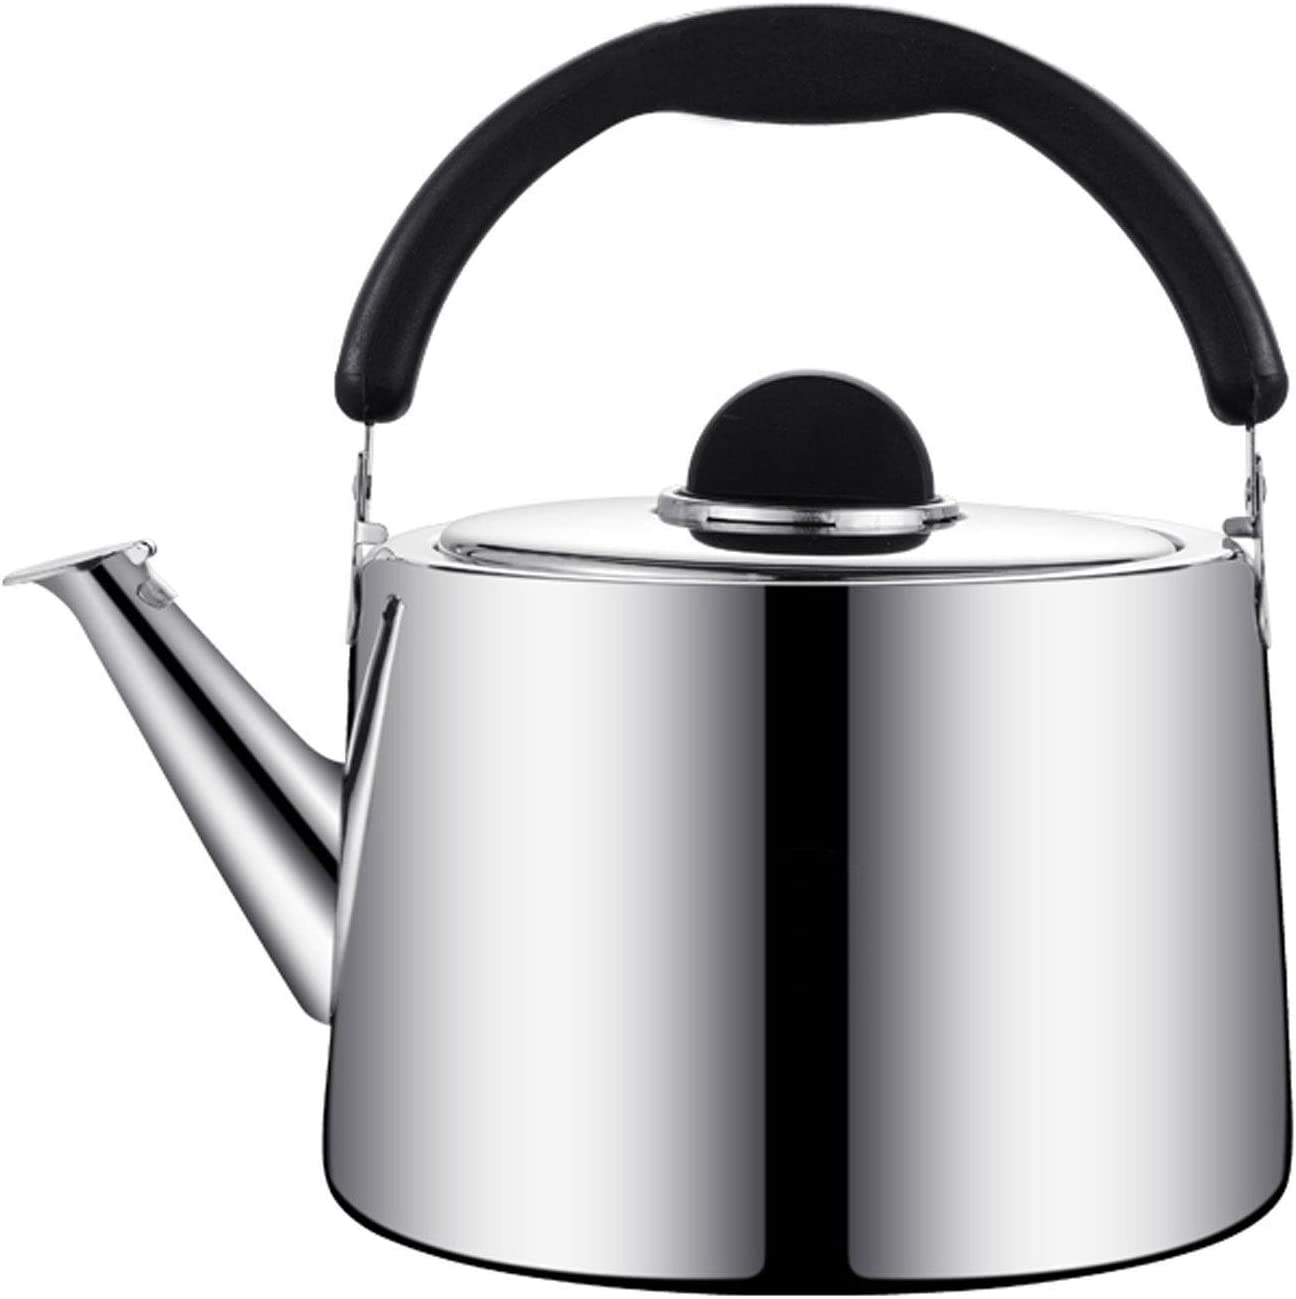 Limited time for free shipping Stove Tea Kettle-whistling Stainless Las Vegas Mall Kettle Steel Ergonomic